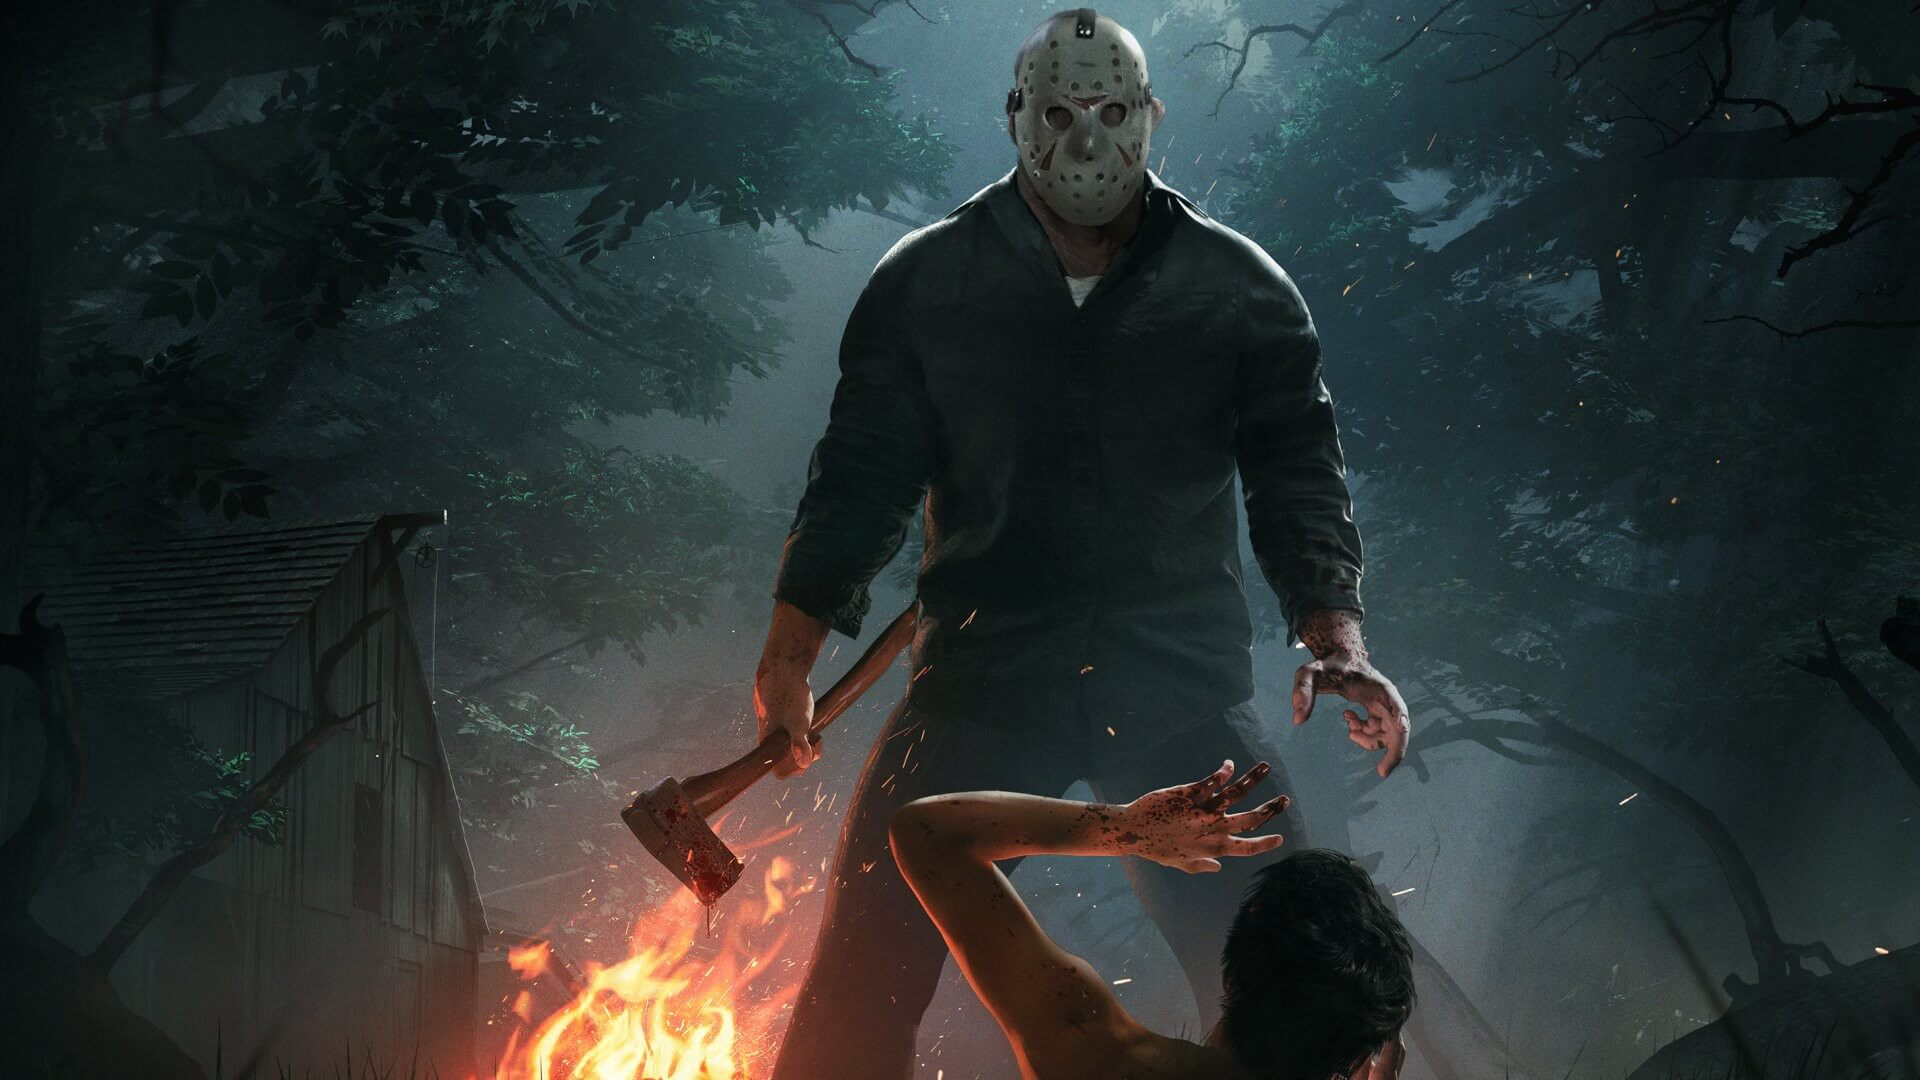 Friday the 13th: The Game is Adding a Single Player Mode